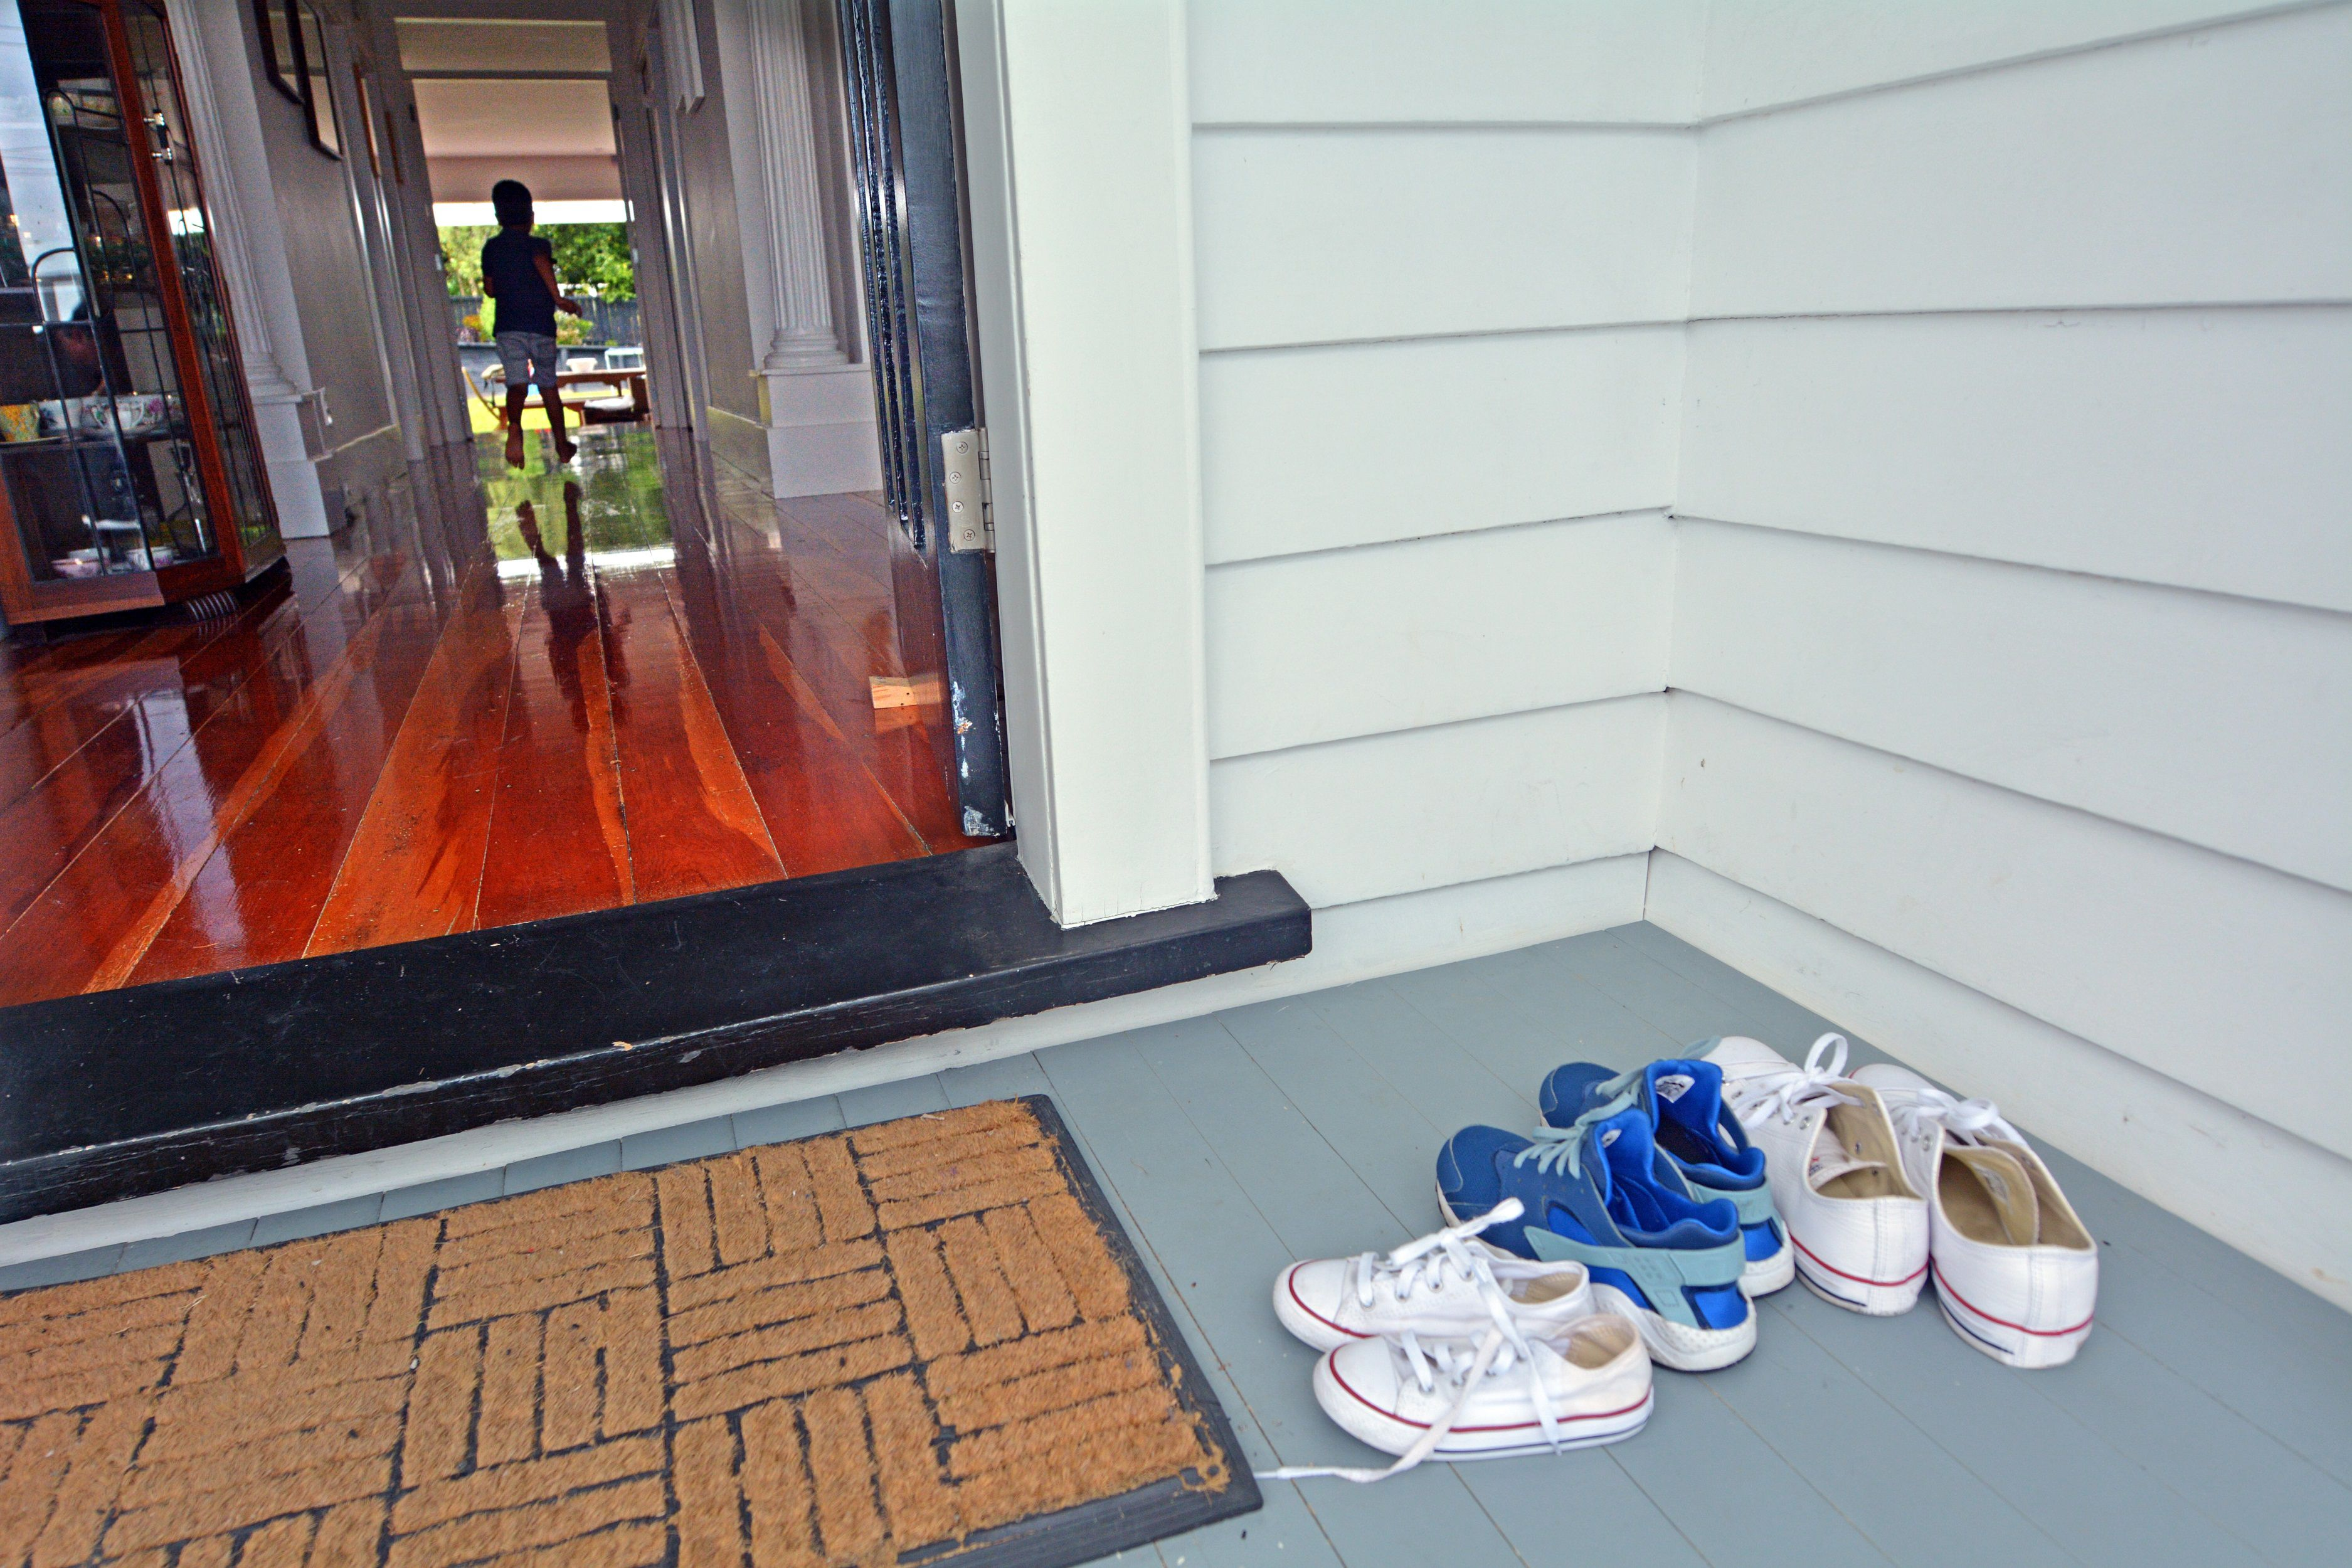 Shoes on porch